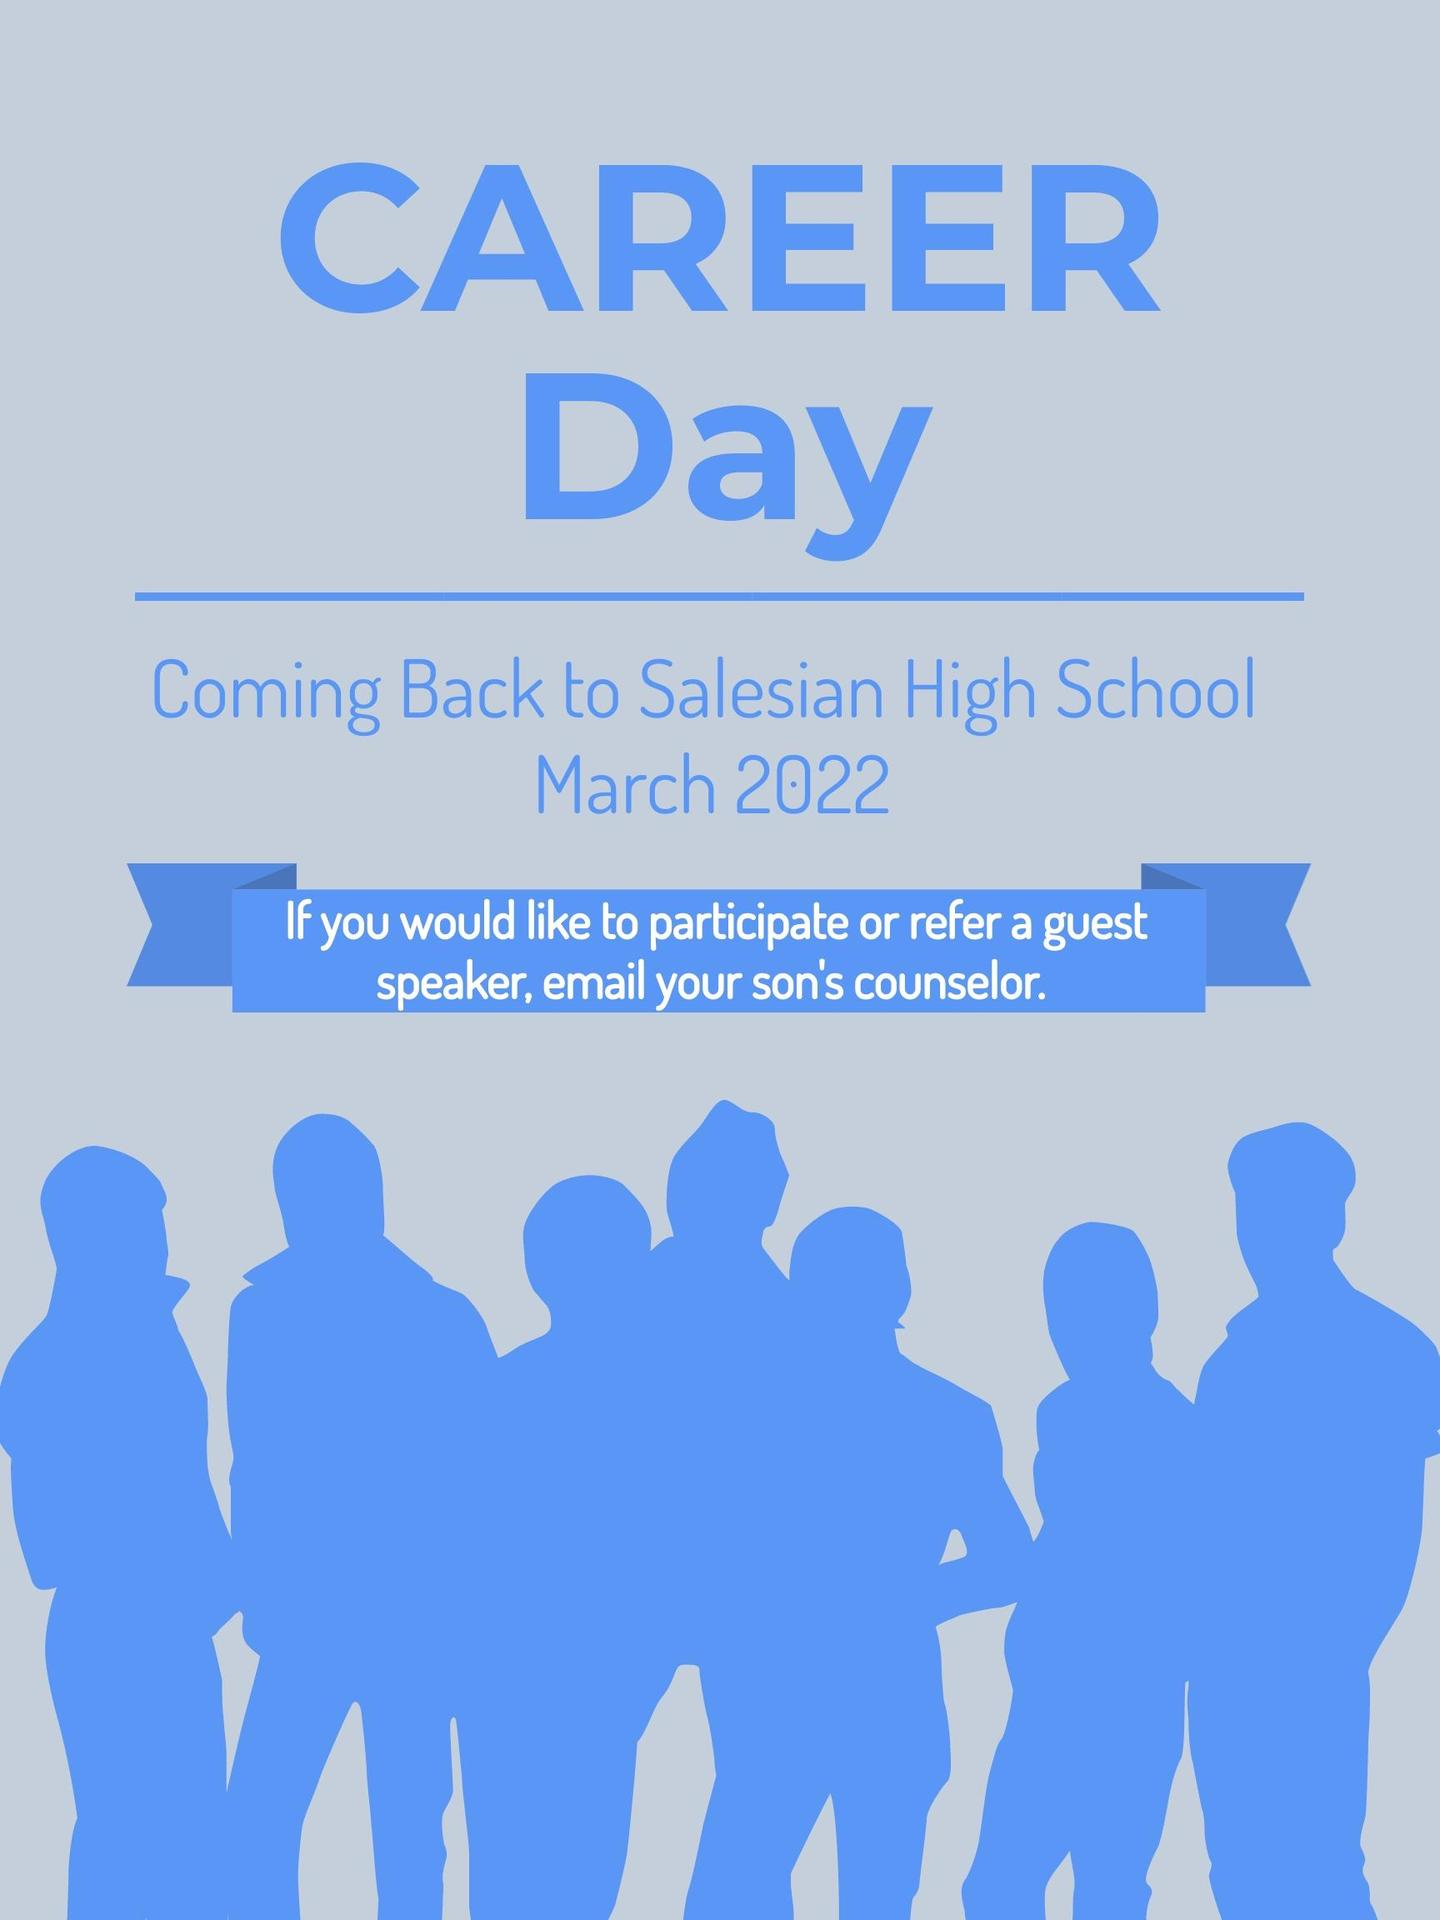 Career Day March 2022